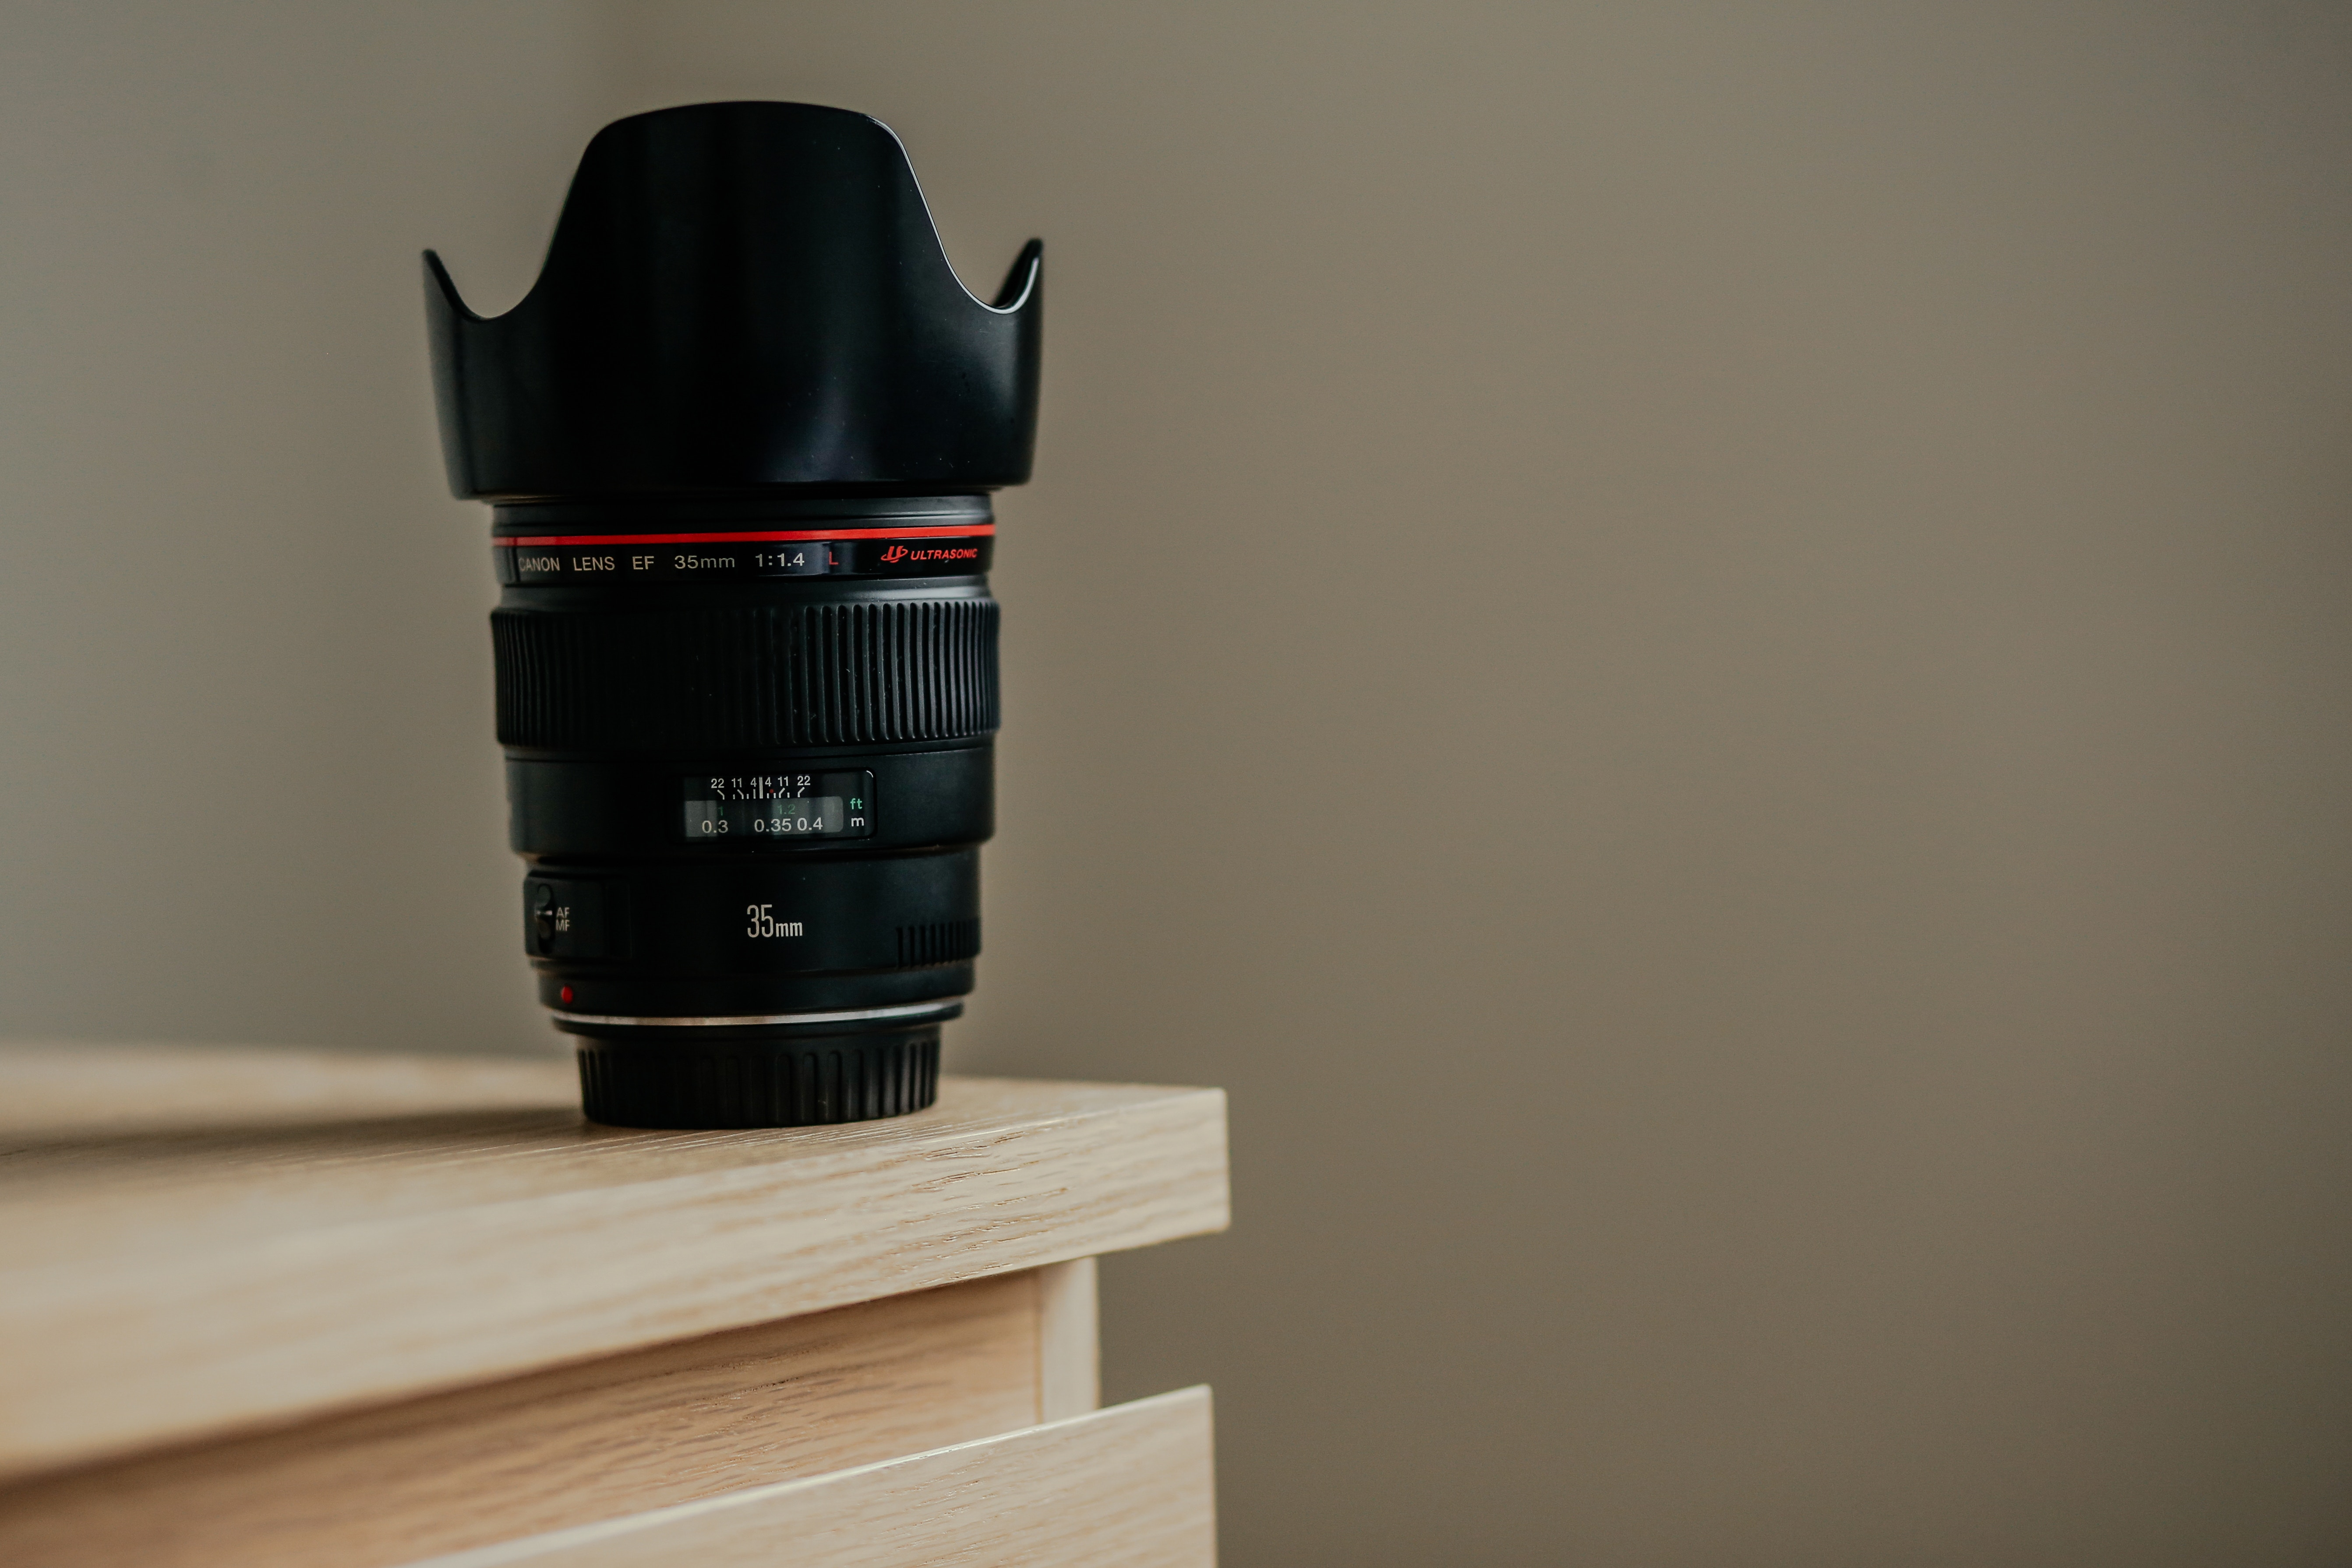 image of a canon lens with a petal lens hood for blog post about the purpose of camera lens hoods